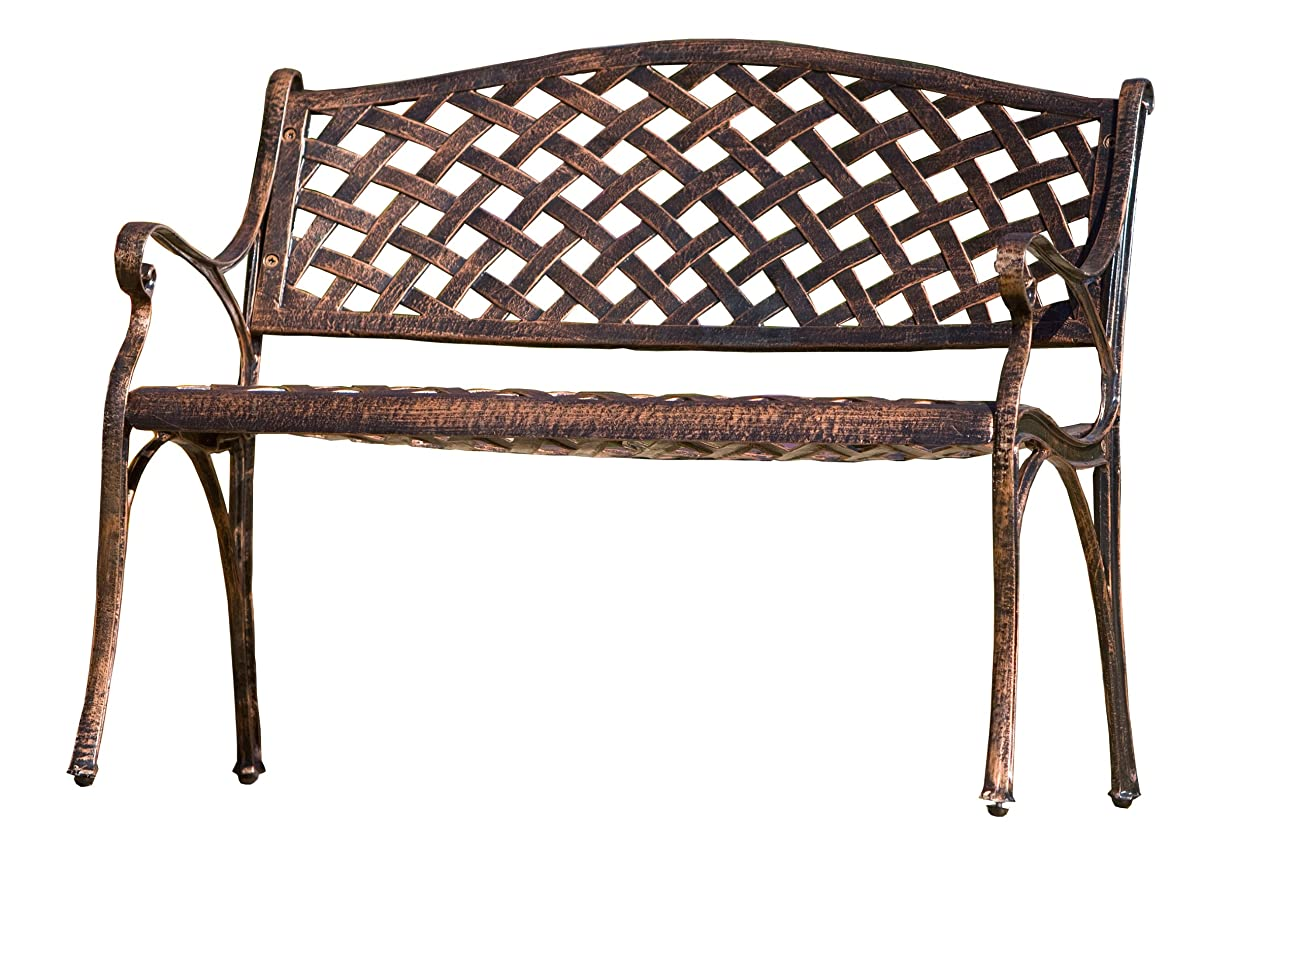 Best Selling Cozumel Cast Aluminum Bench, Antique Copper Finish 0